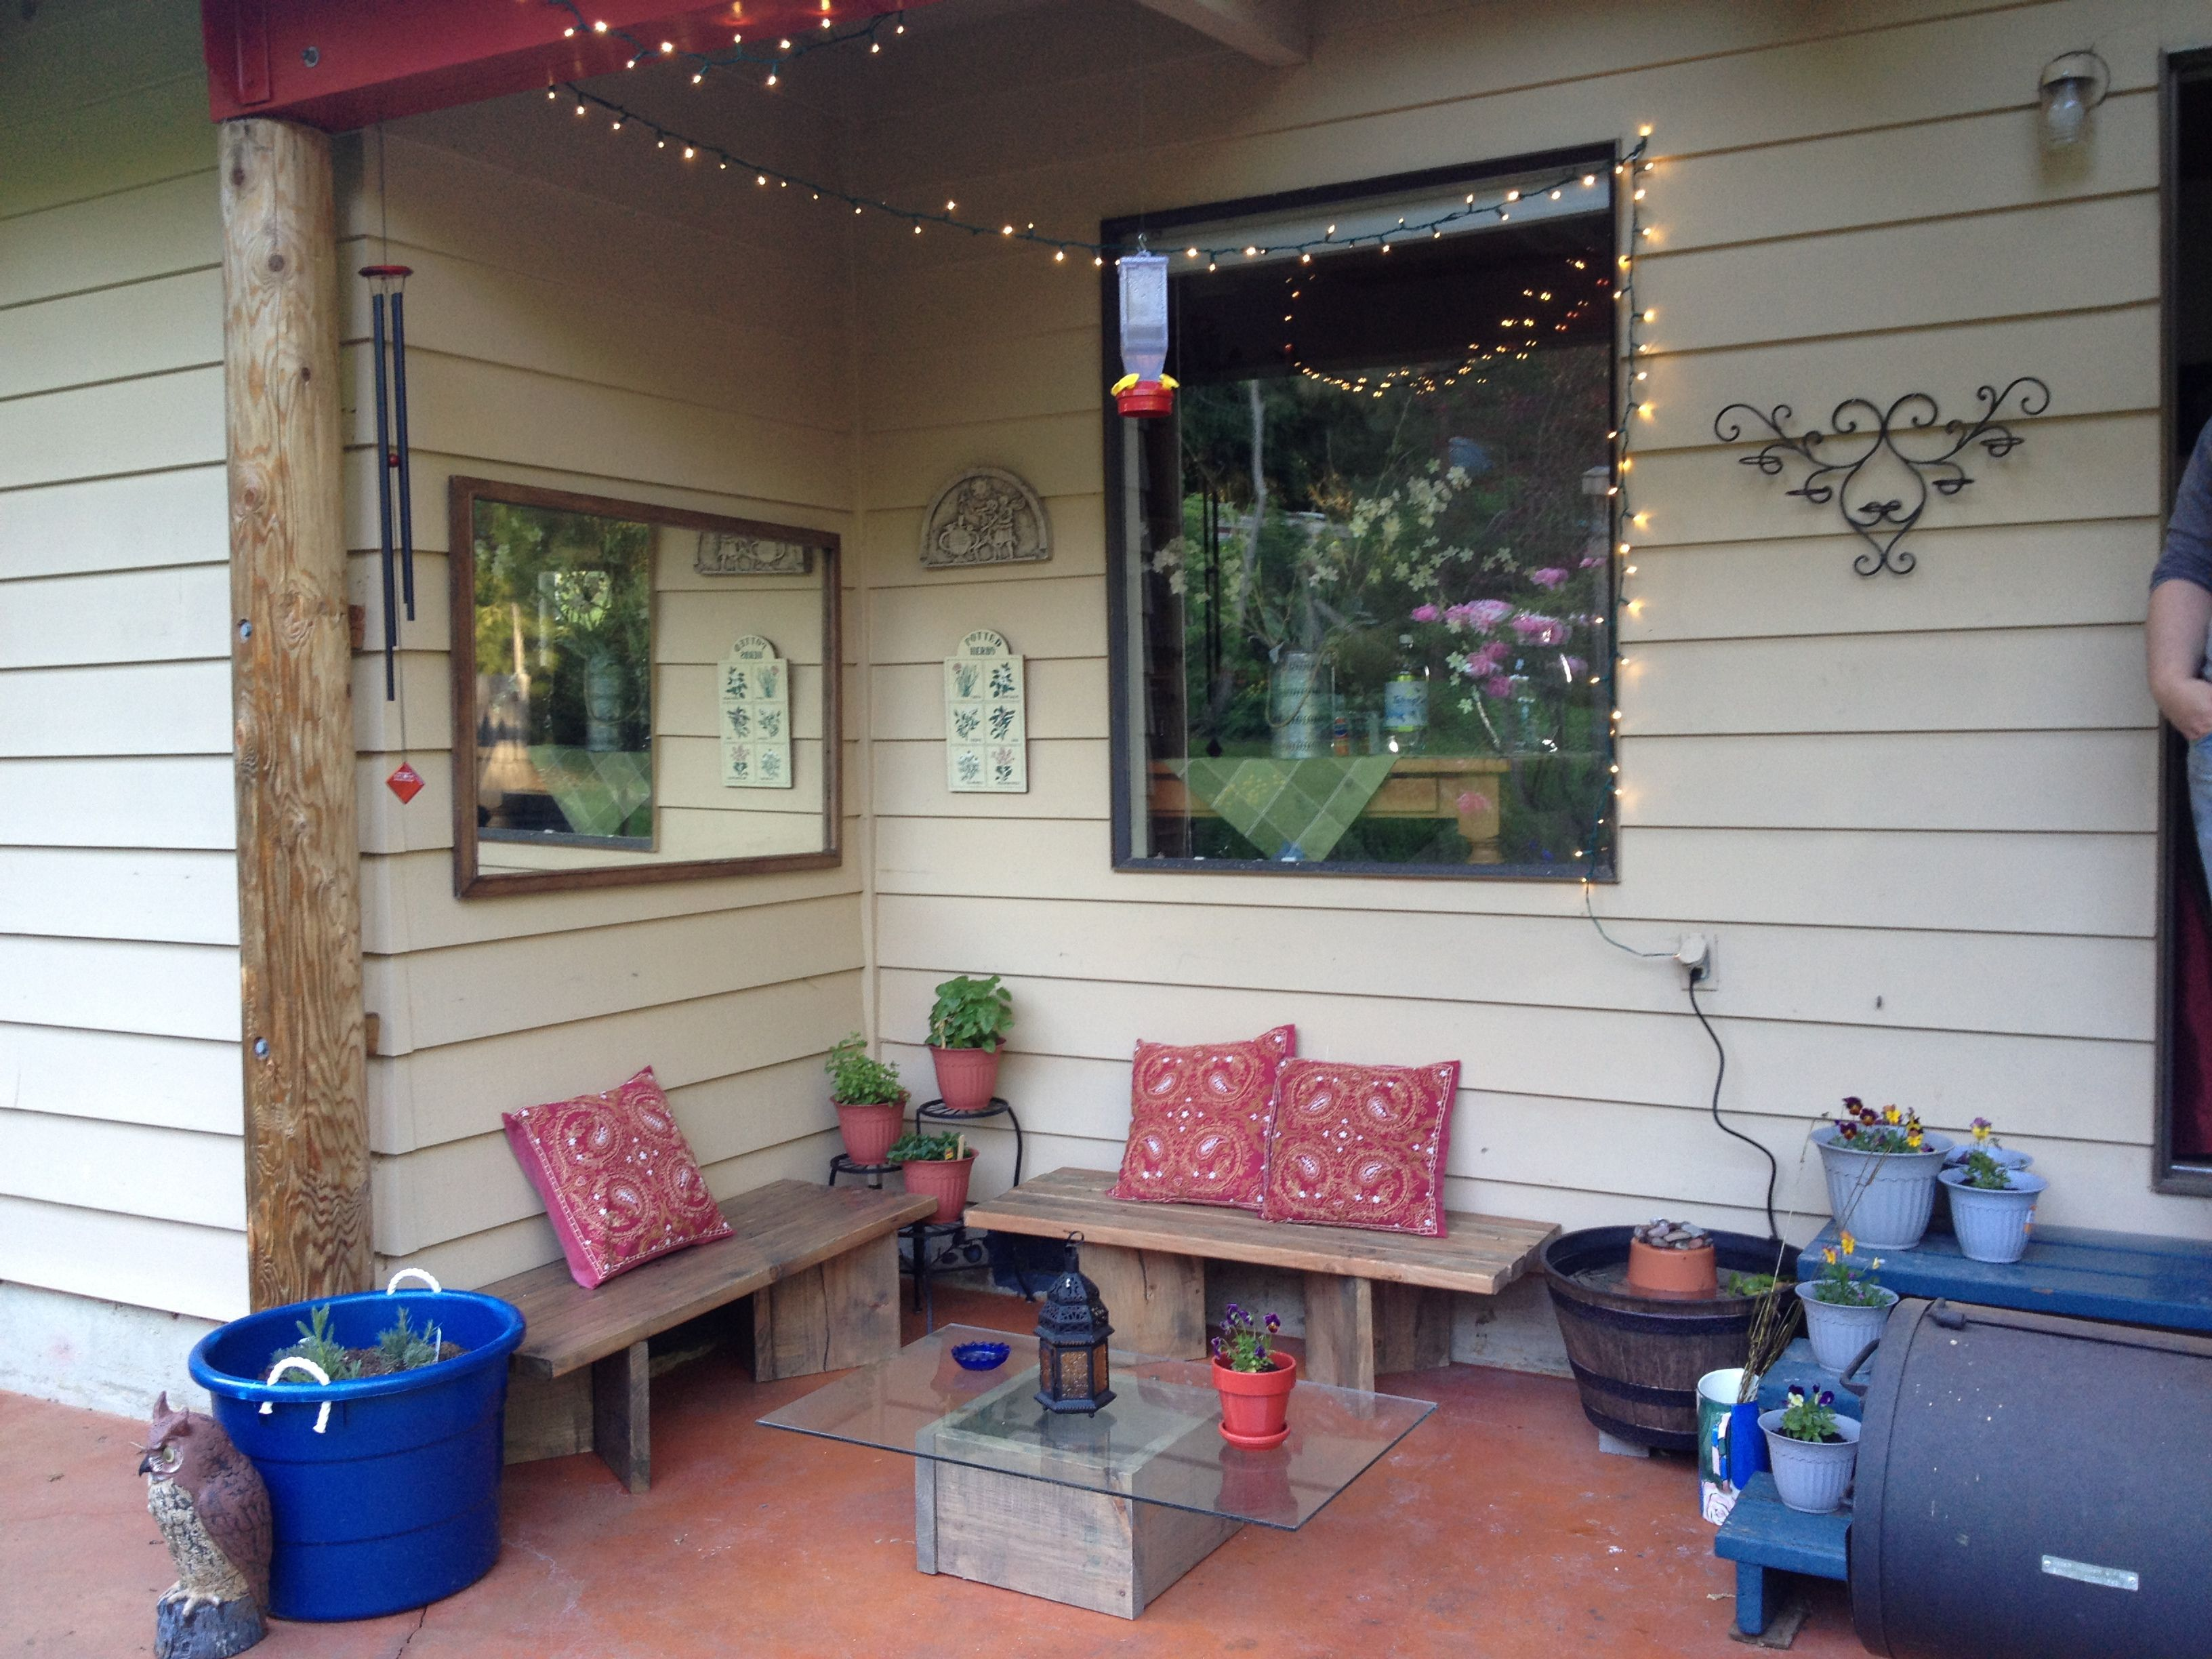 Captivating My $100 Patio: $40 Of Lumber, Pre Cut At Home Depot, $2. Glass Table  TopGlass ...